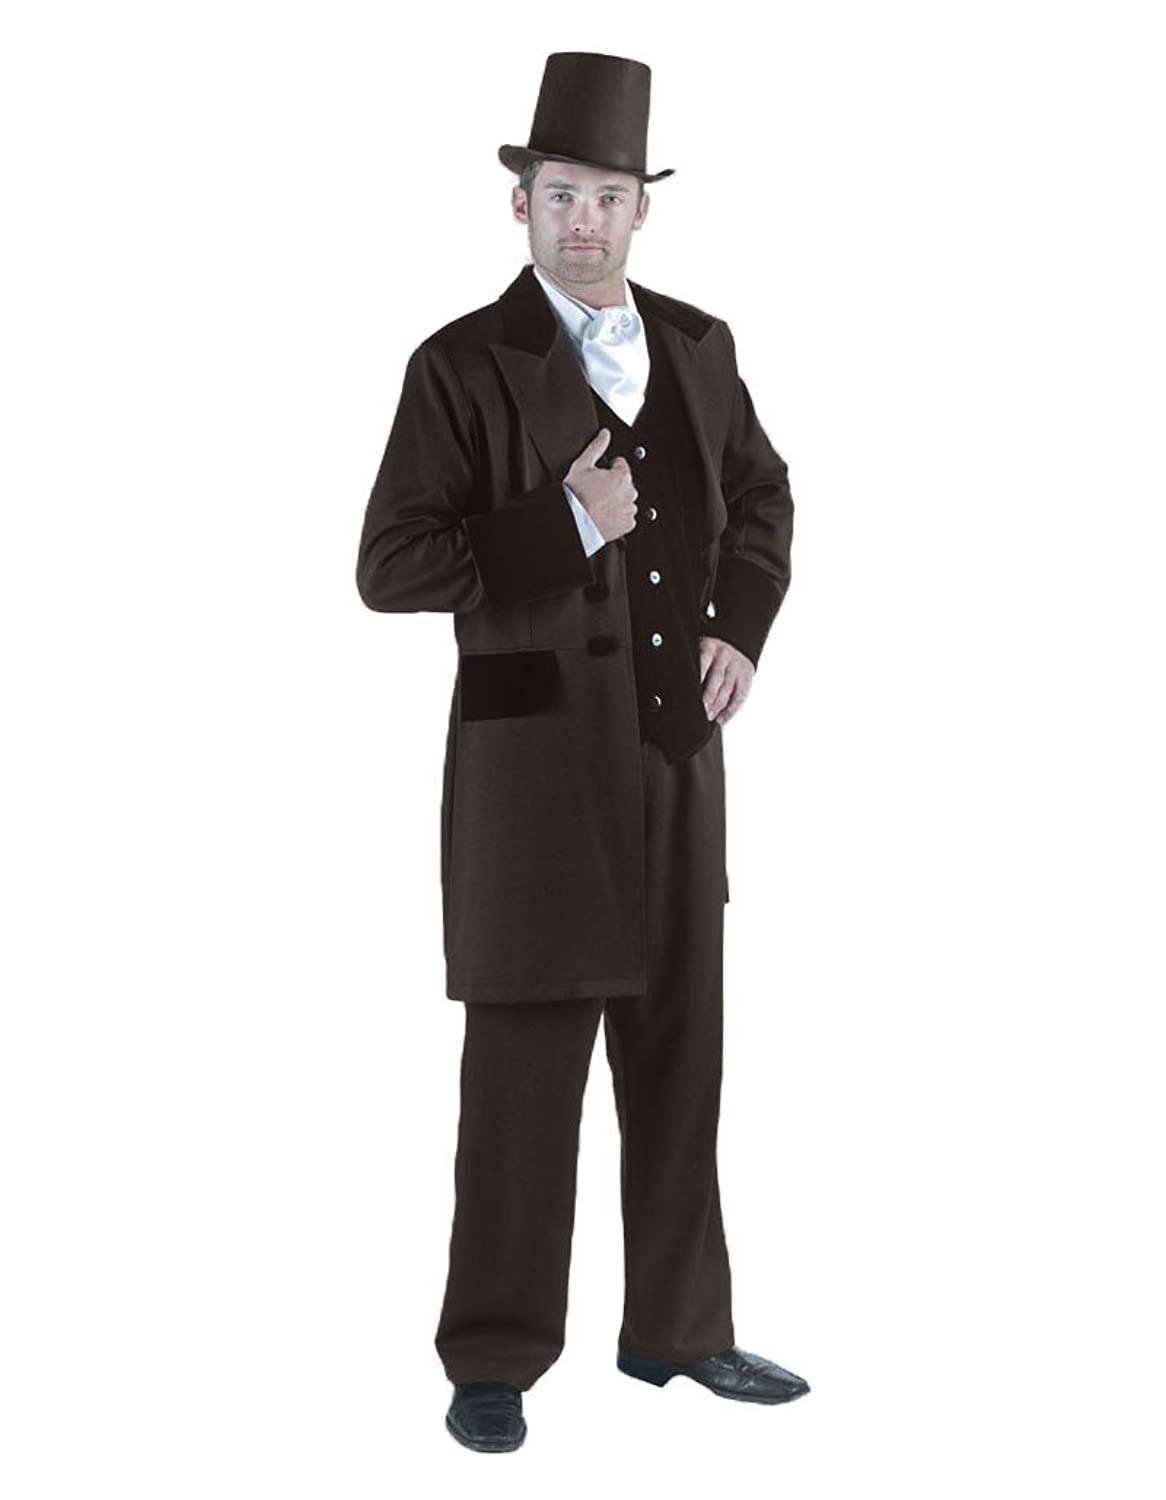 Victorian Men's Formal Wear, Wedding Tuxedo Mens Rhett Butler Suit Theater Costume $249.99 AT vintagedancer.com